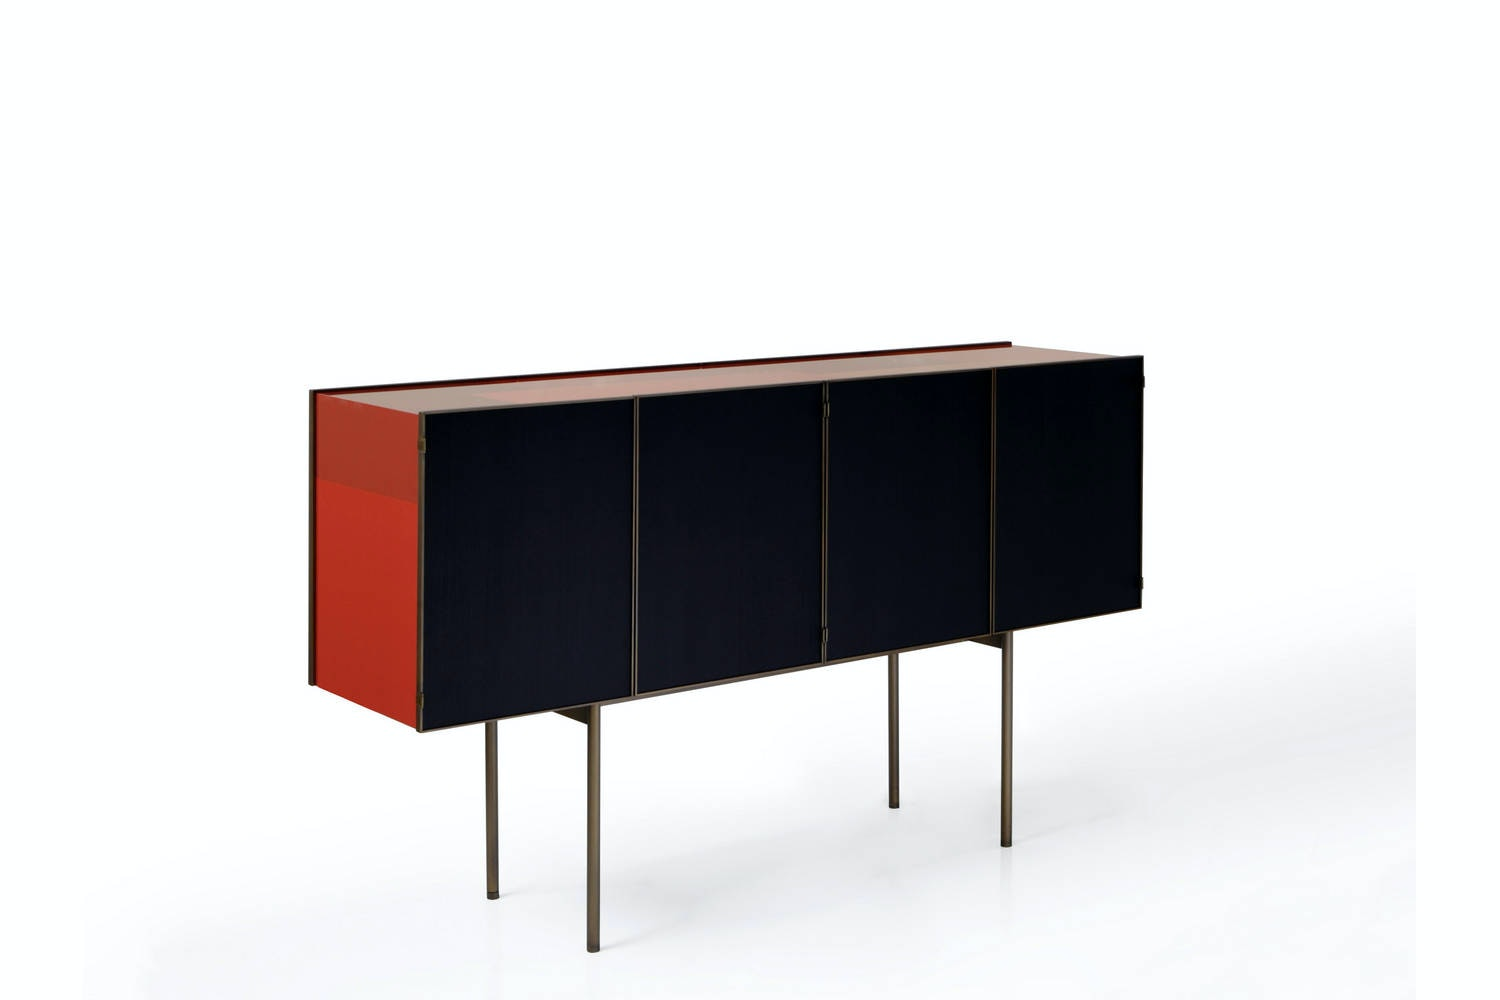 Ipercolore Sideboard by Piero Lissoni for Porro